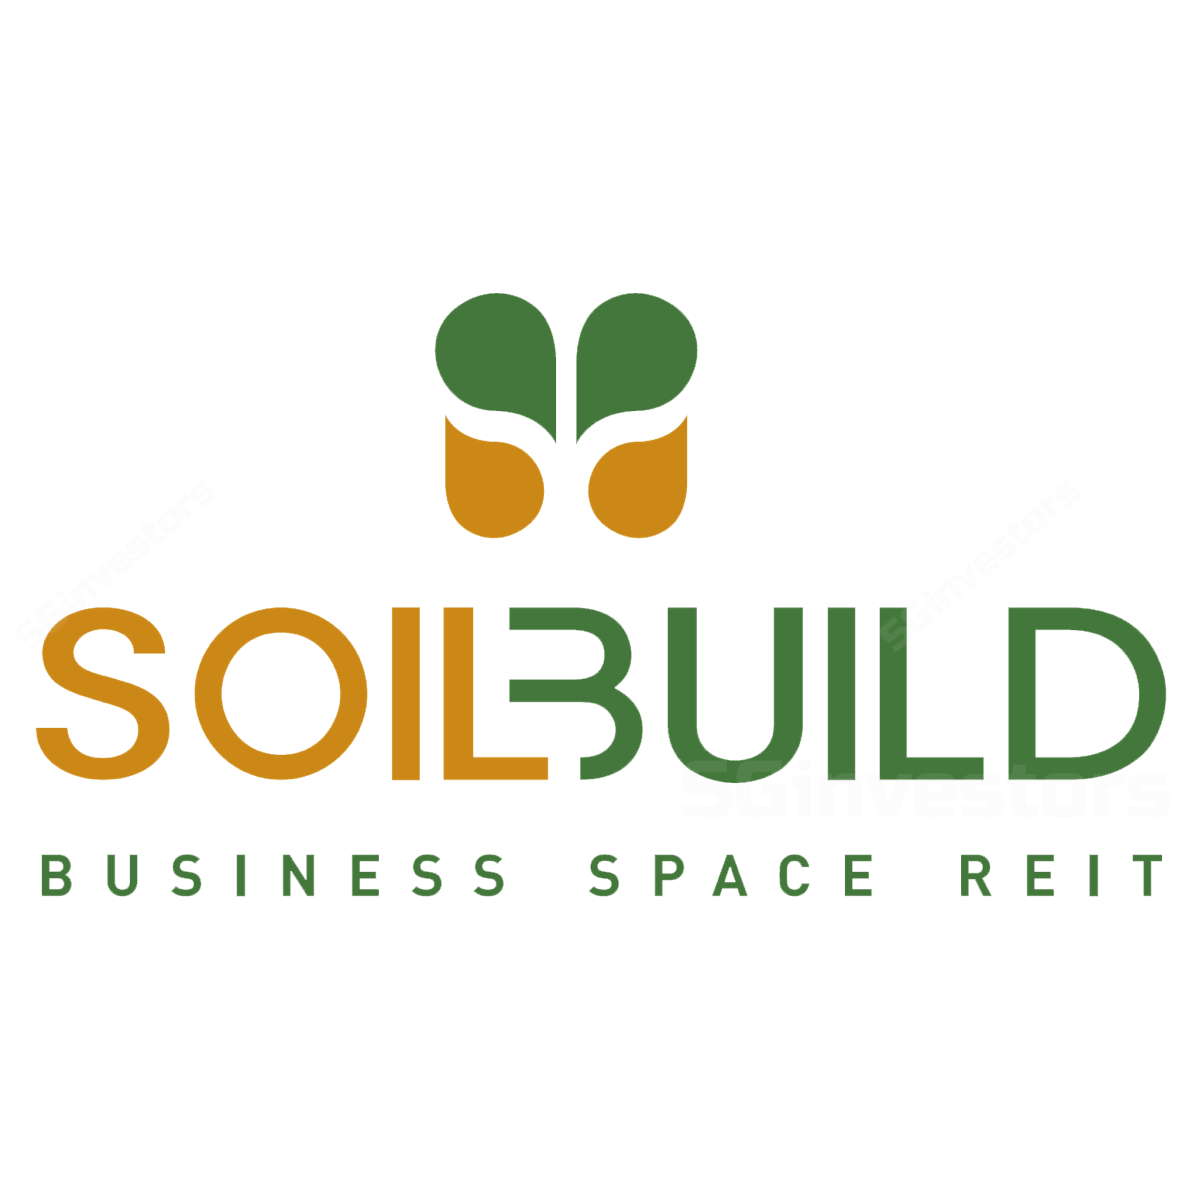 Soilbuild Business Space Reit - DBS Vickers 2017-04-17: 1Q17 results in line - gloomy outlook priced in